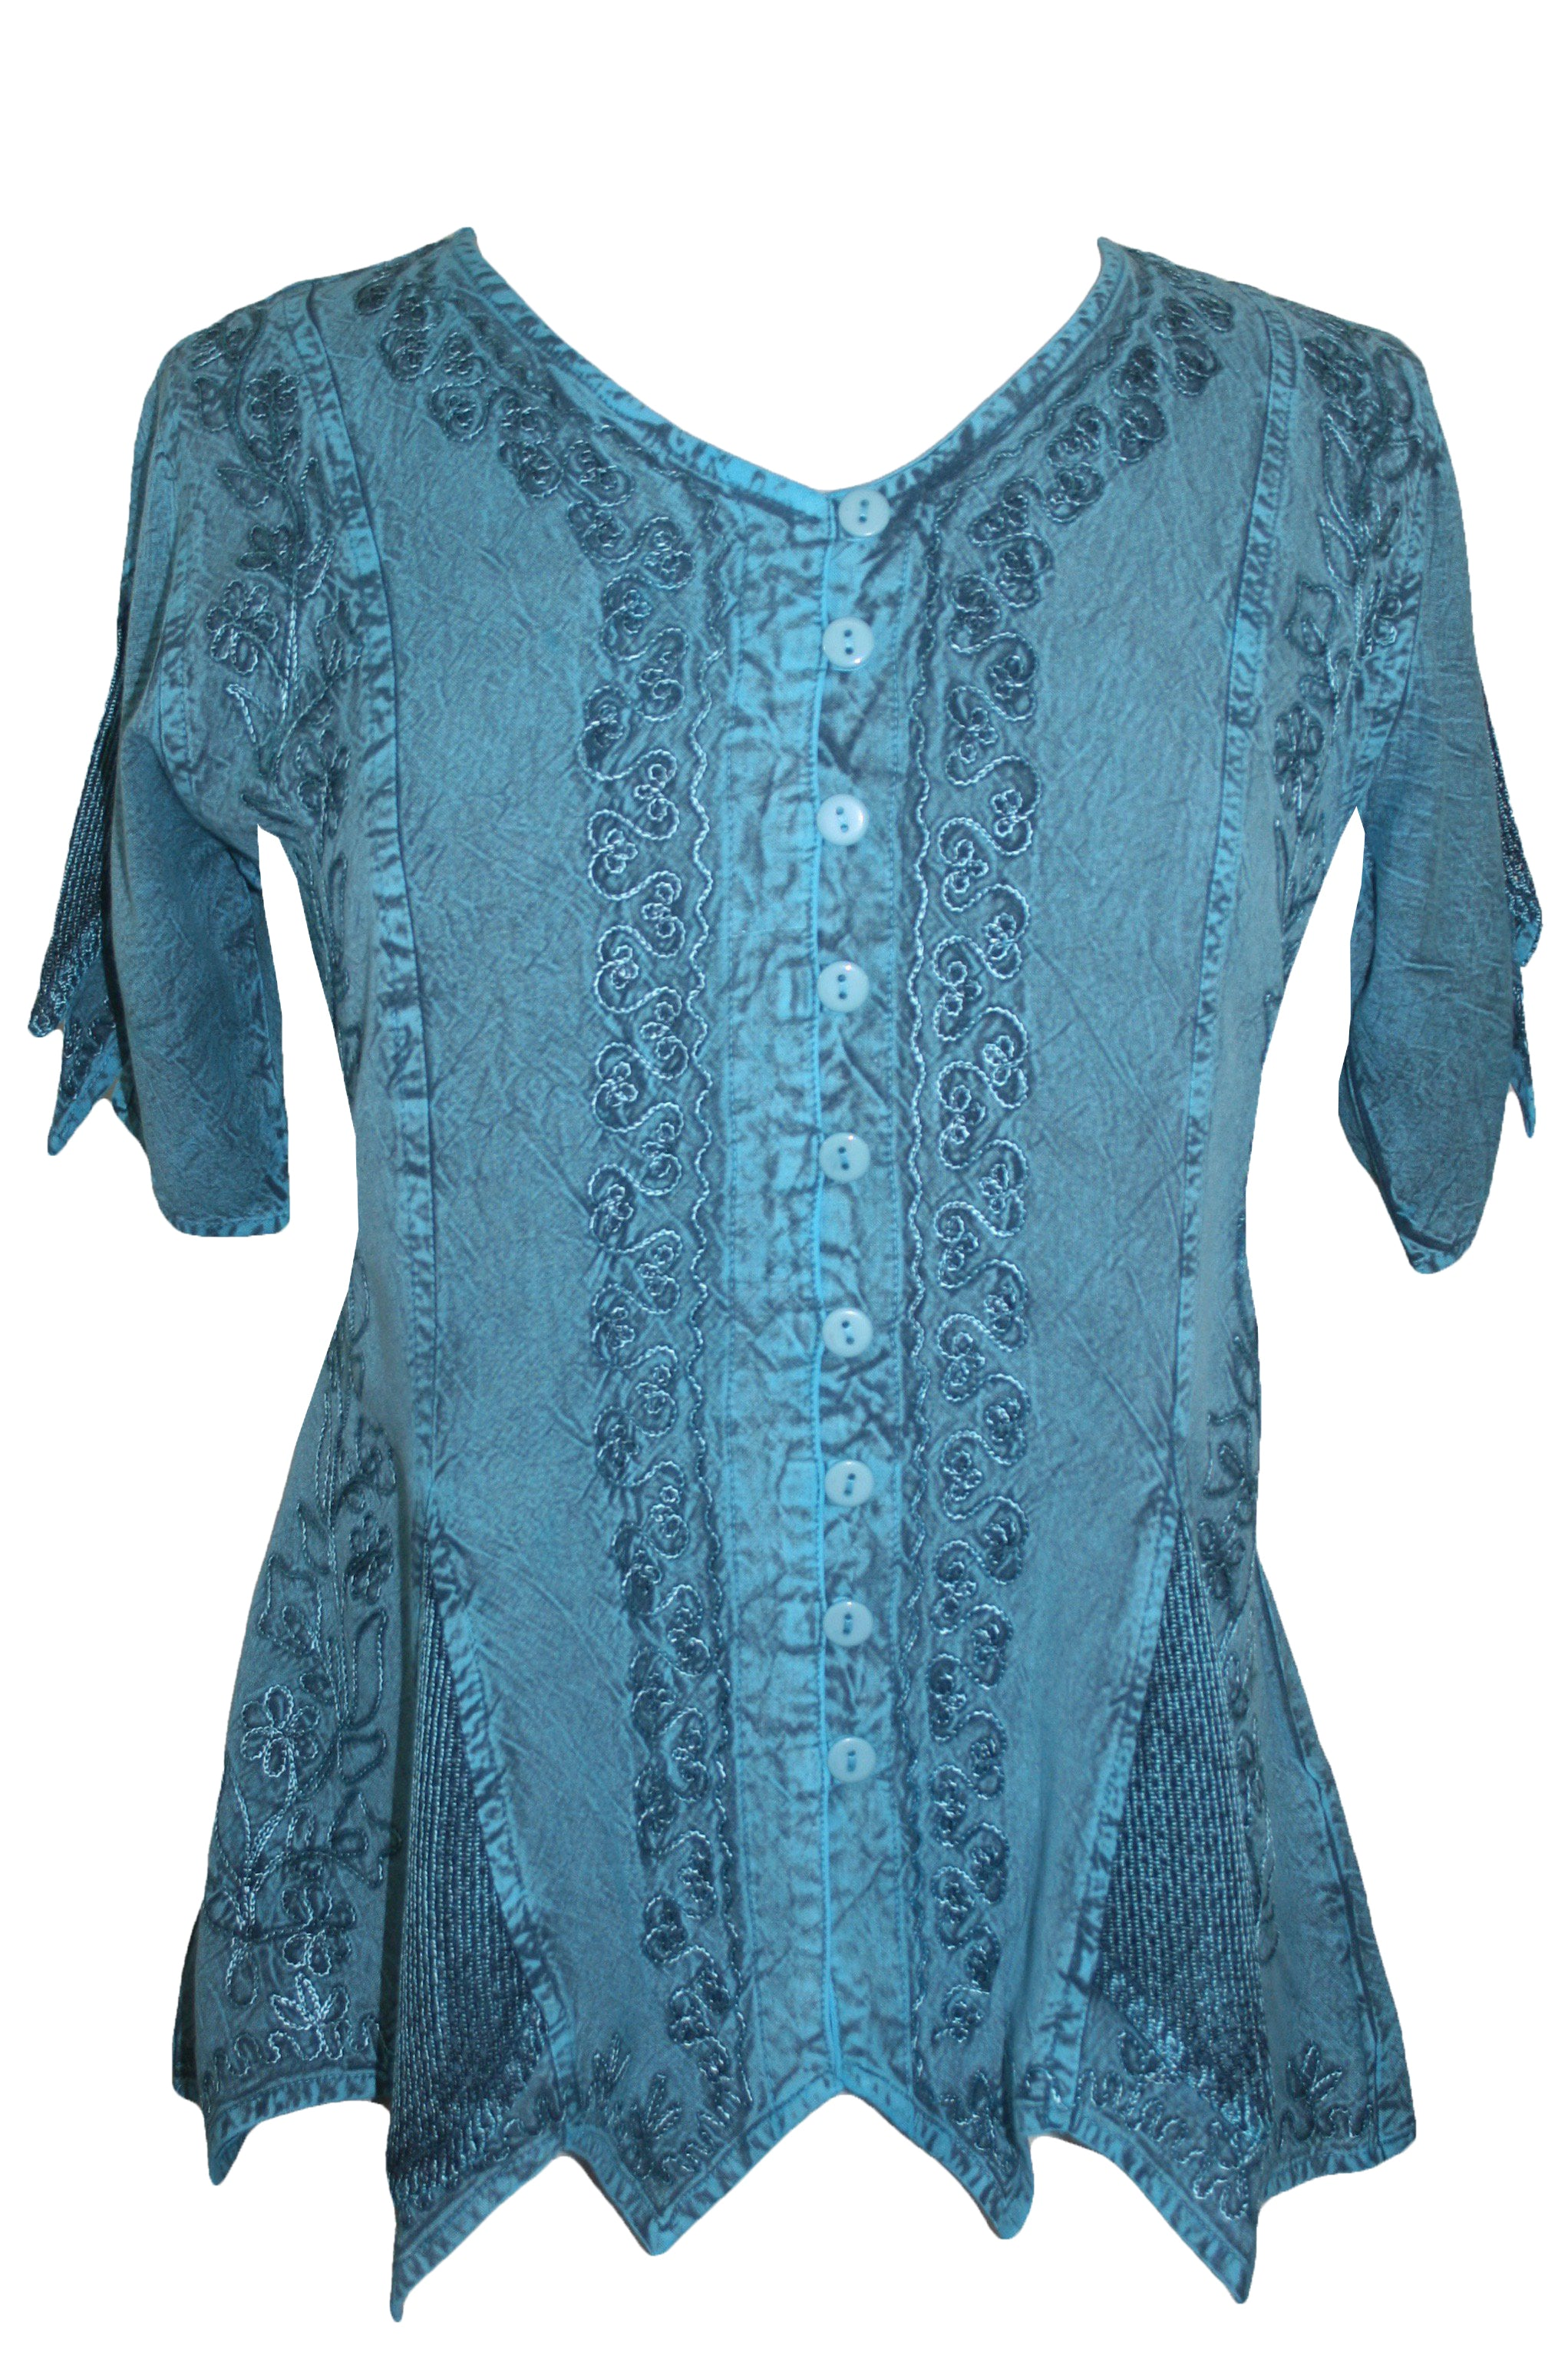 Gypsy Medieval Netted Assymetrical Vintage Top Blouse - Agan Traders, Turquoise